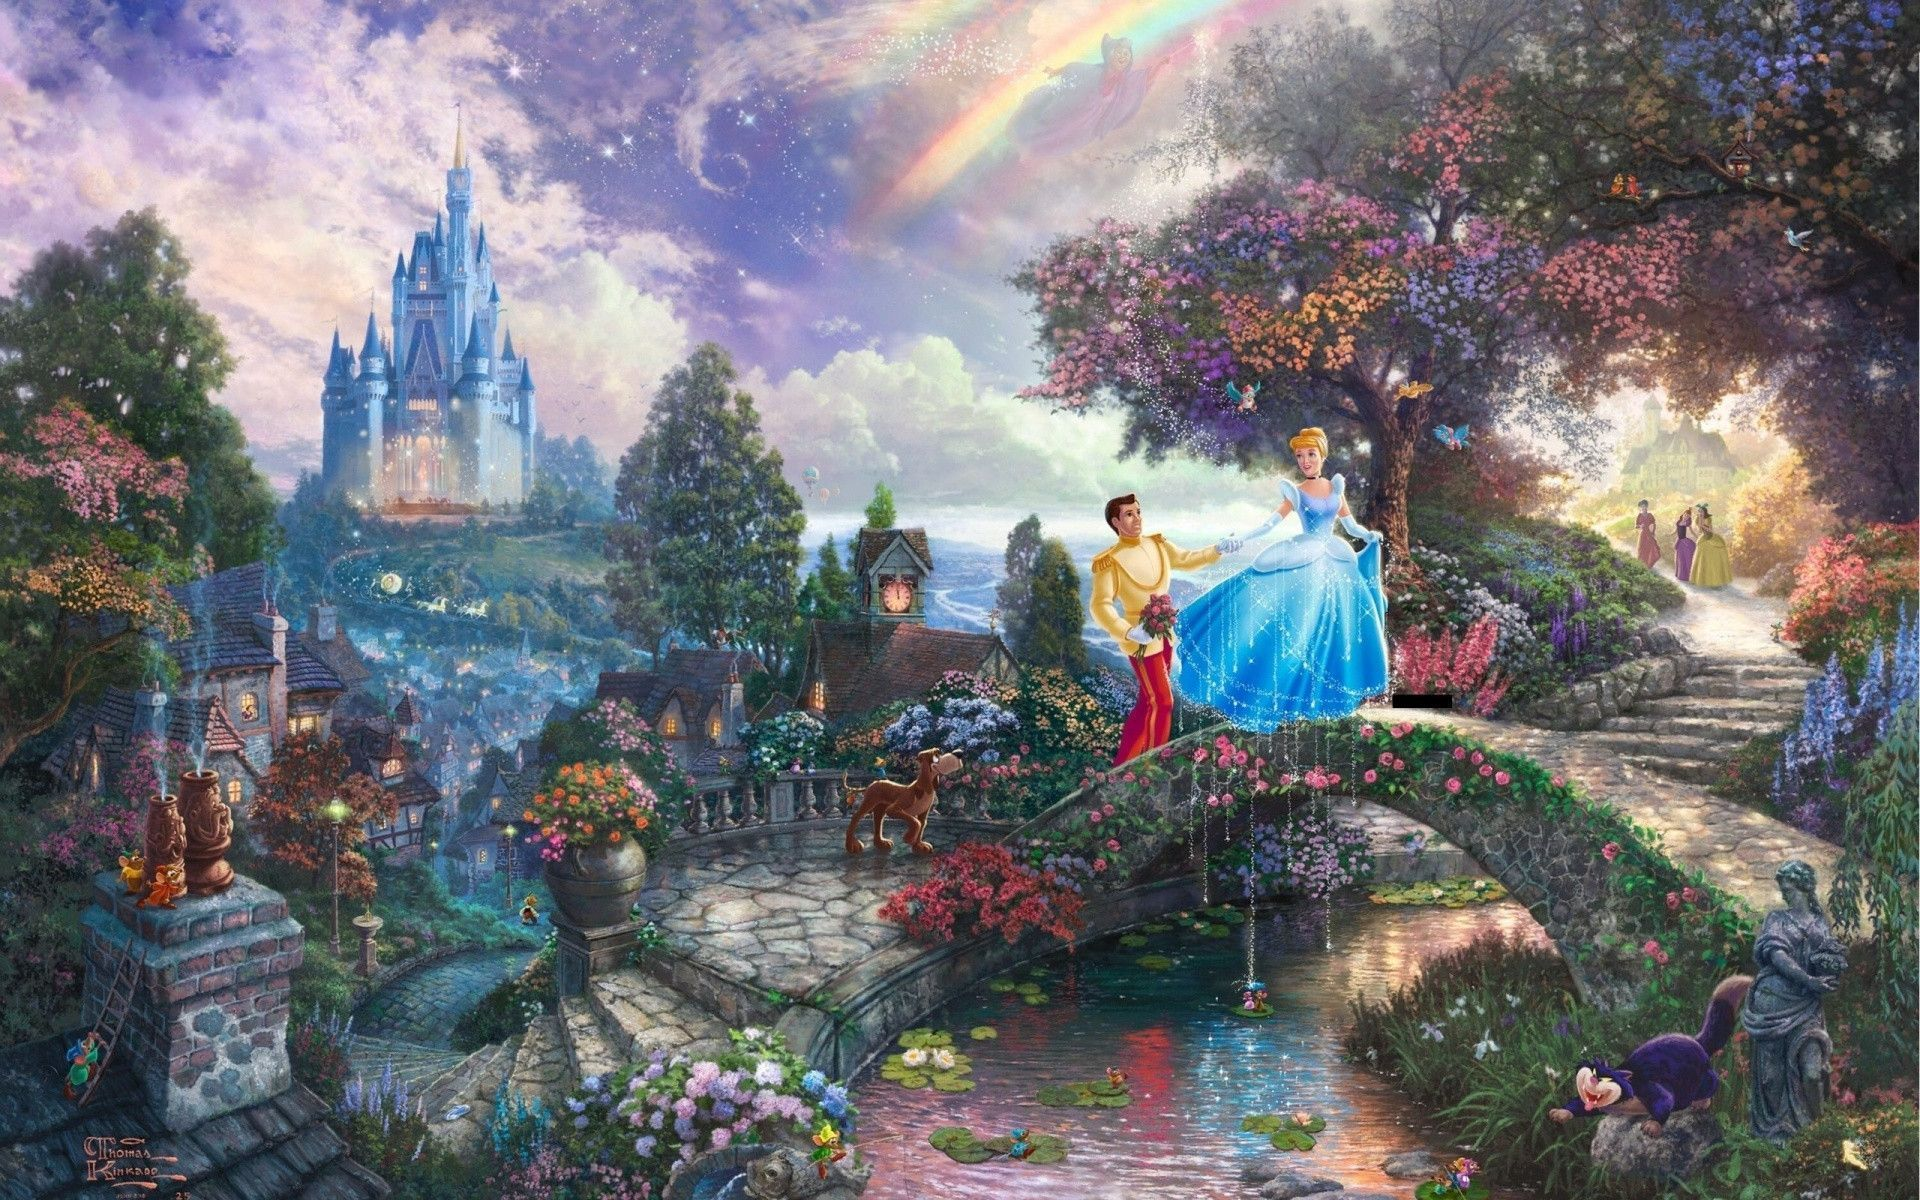 Thomas Kinkade Disney Wallpaper